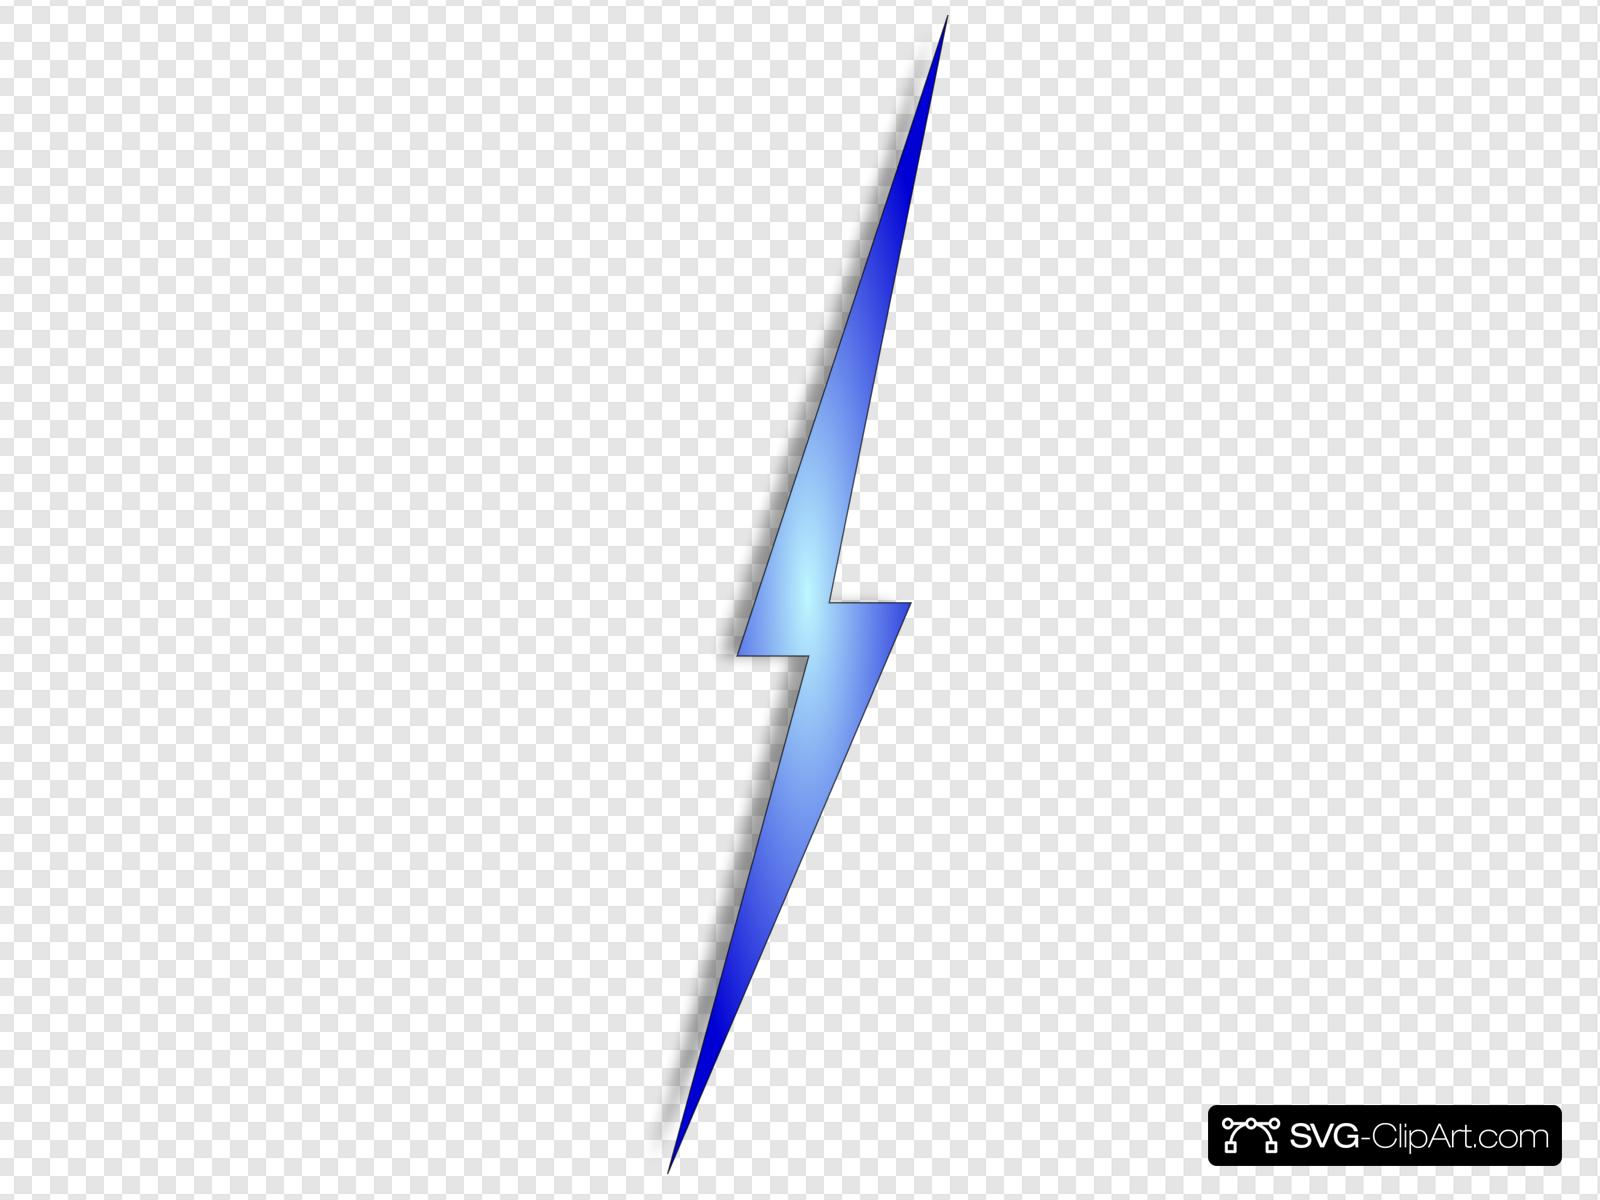 Electric clipart electric spark. Clip art icon and